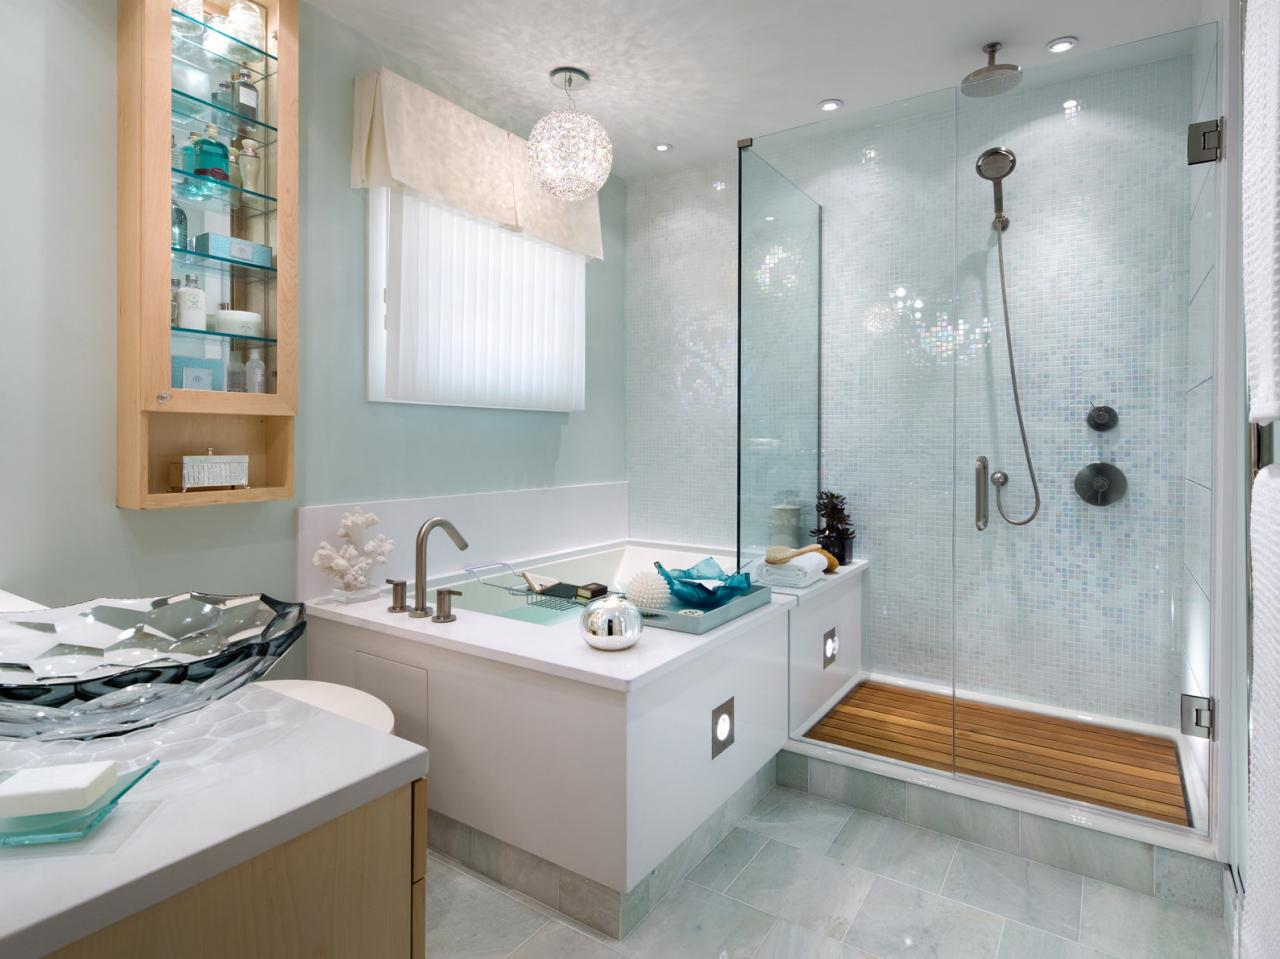 Corner Bathtub Design Ideas: Pictures & Tips From HGTV